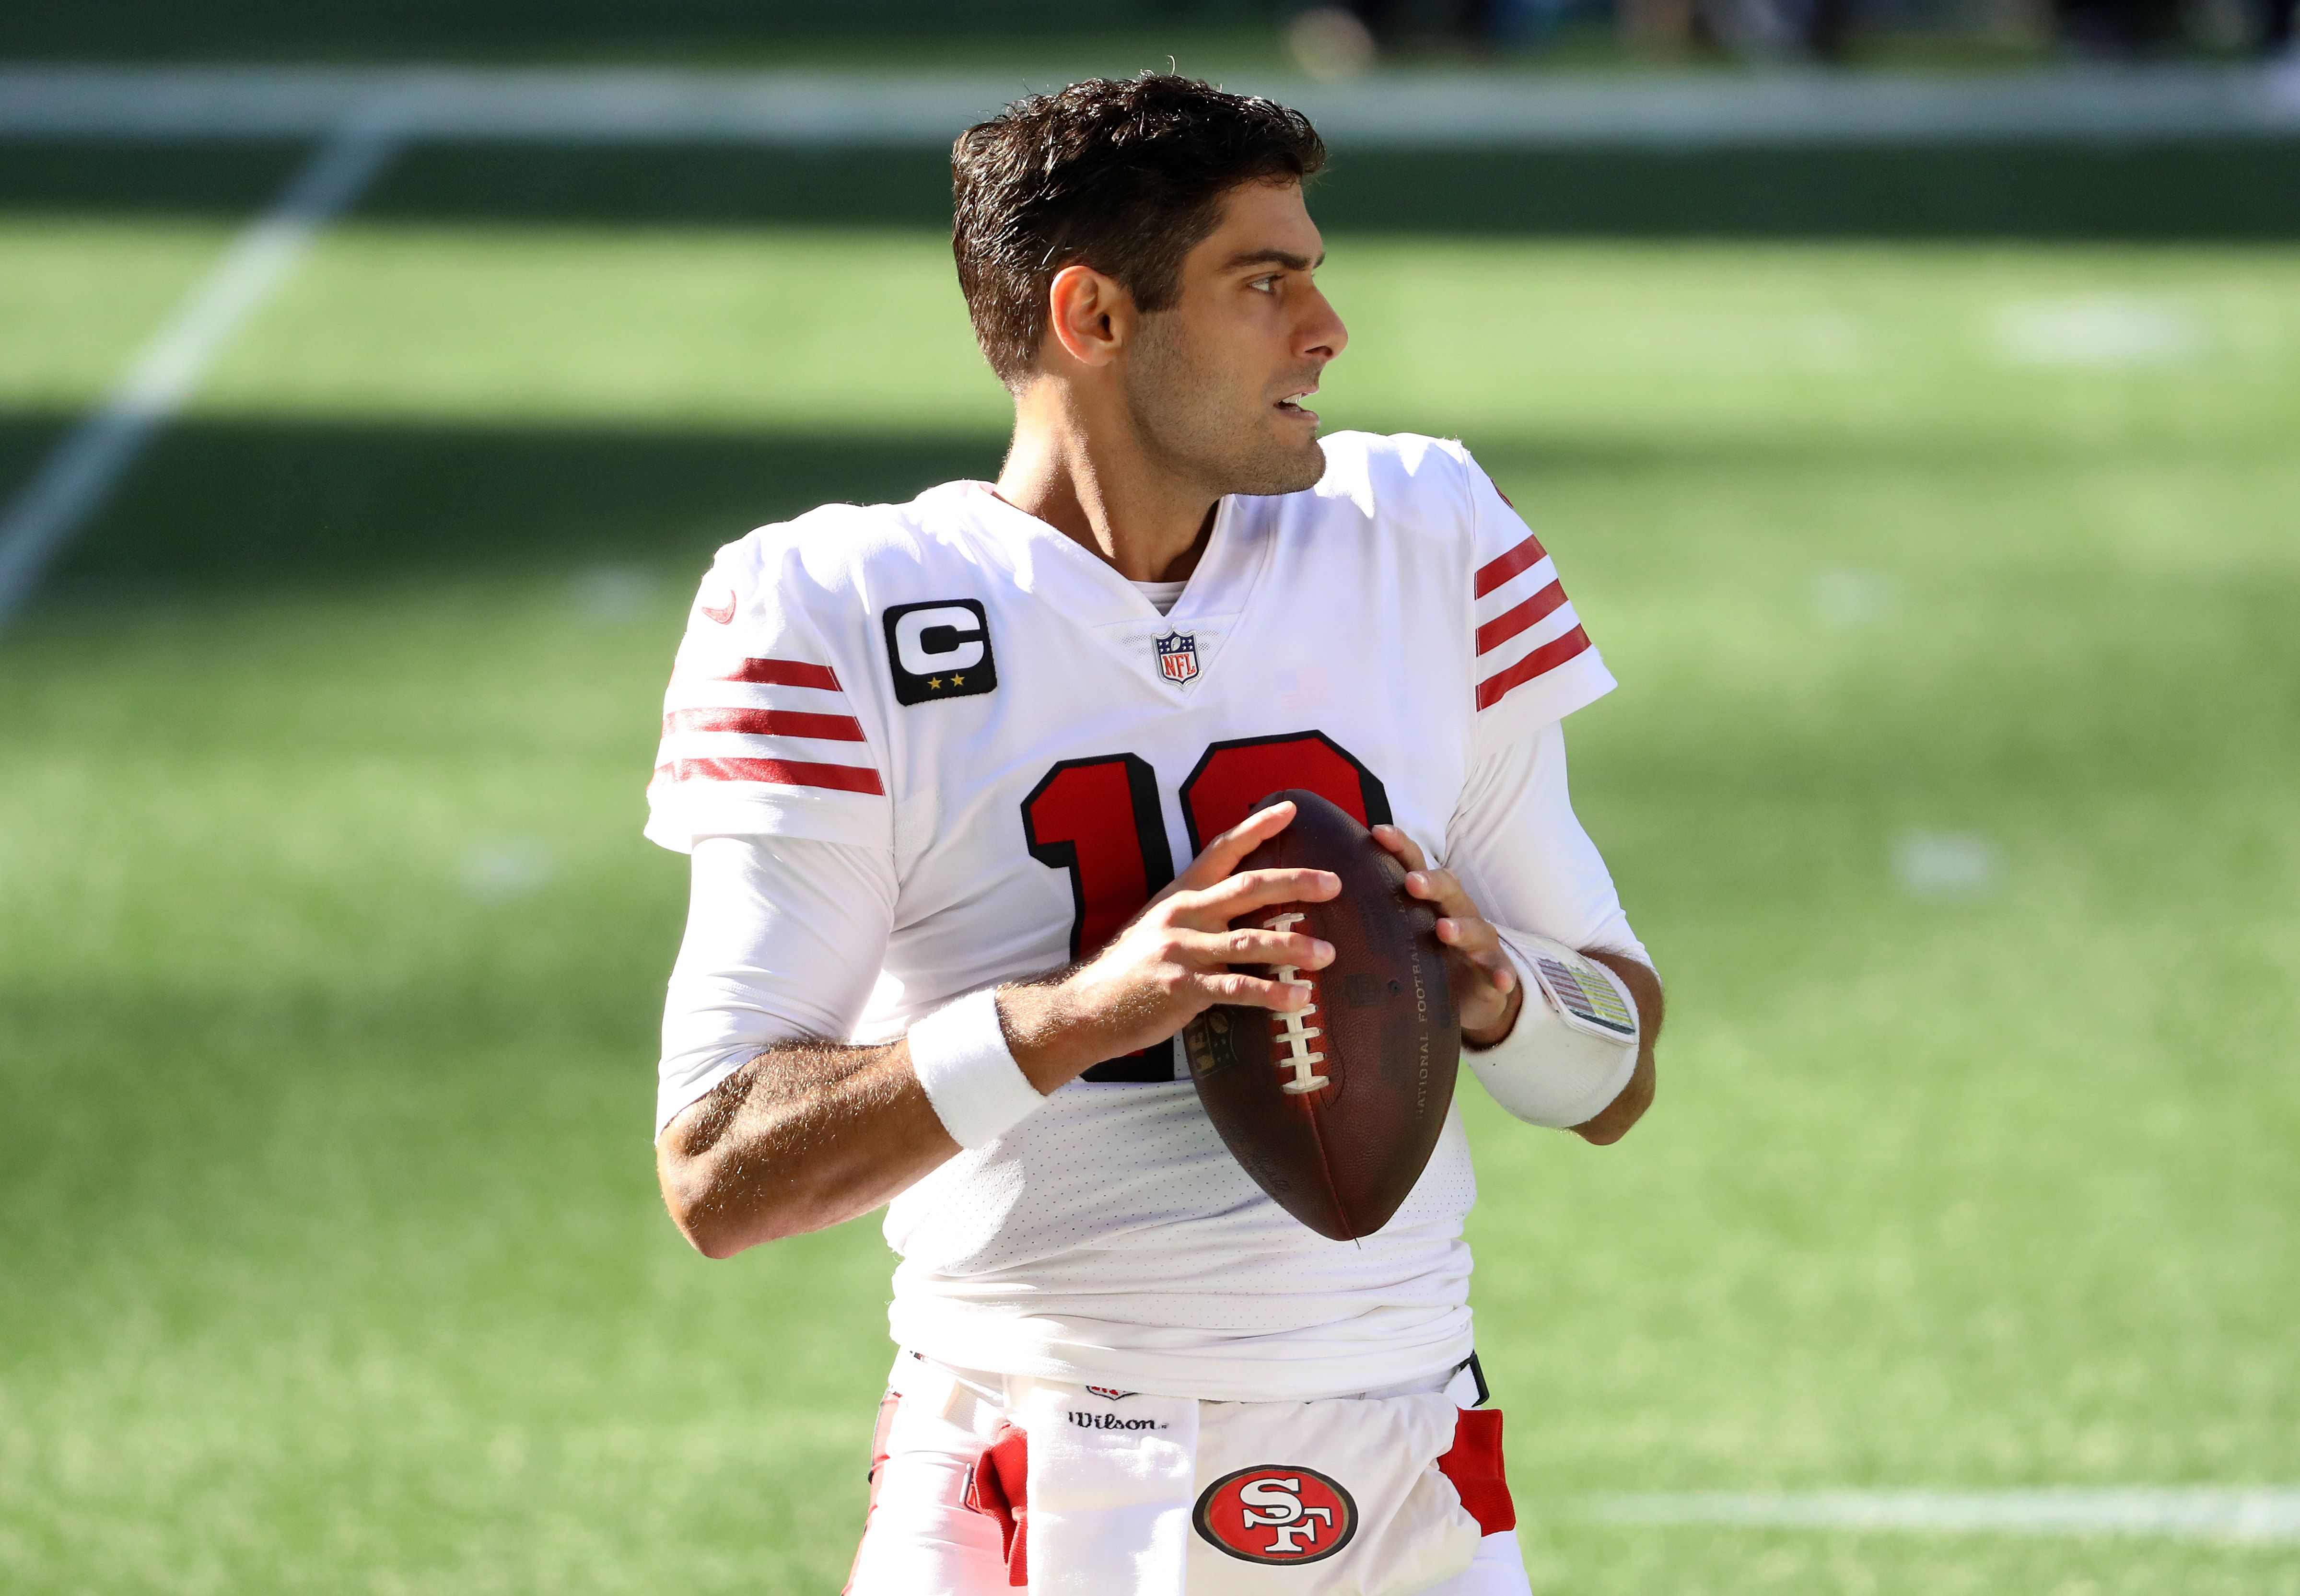 Jimmy Garoppolo practices throwing